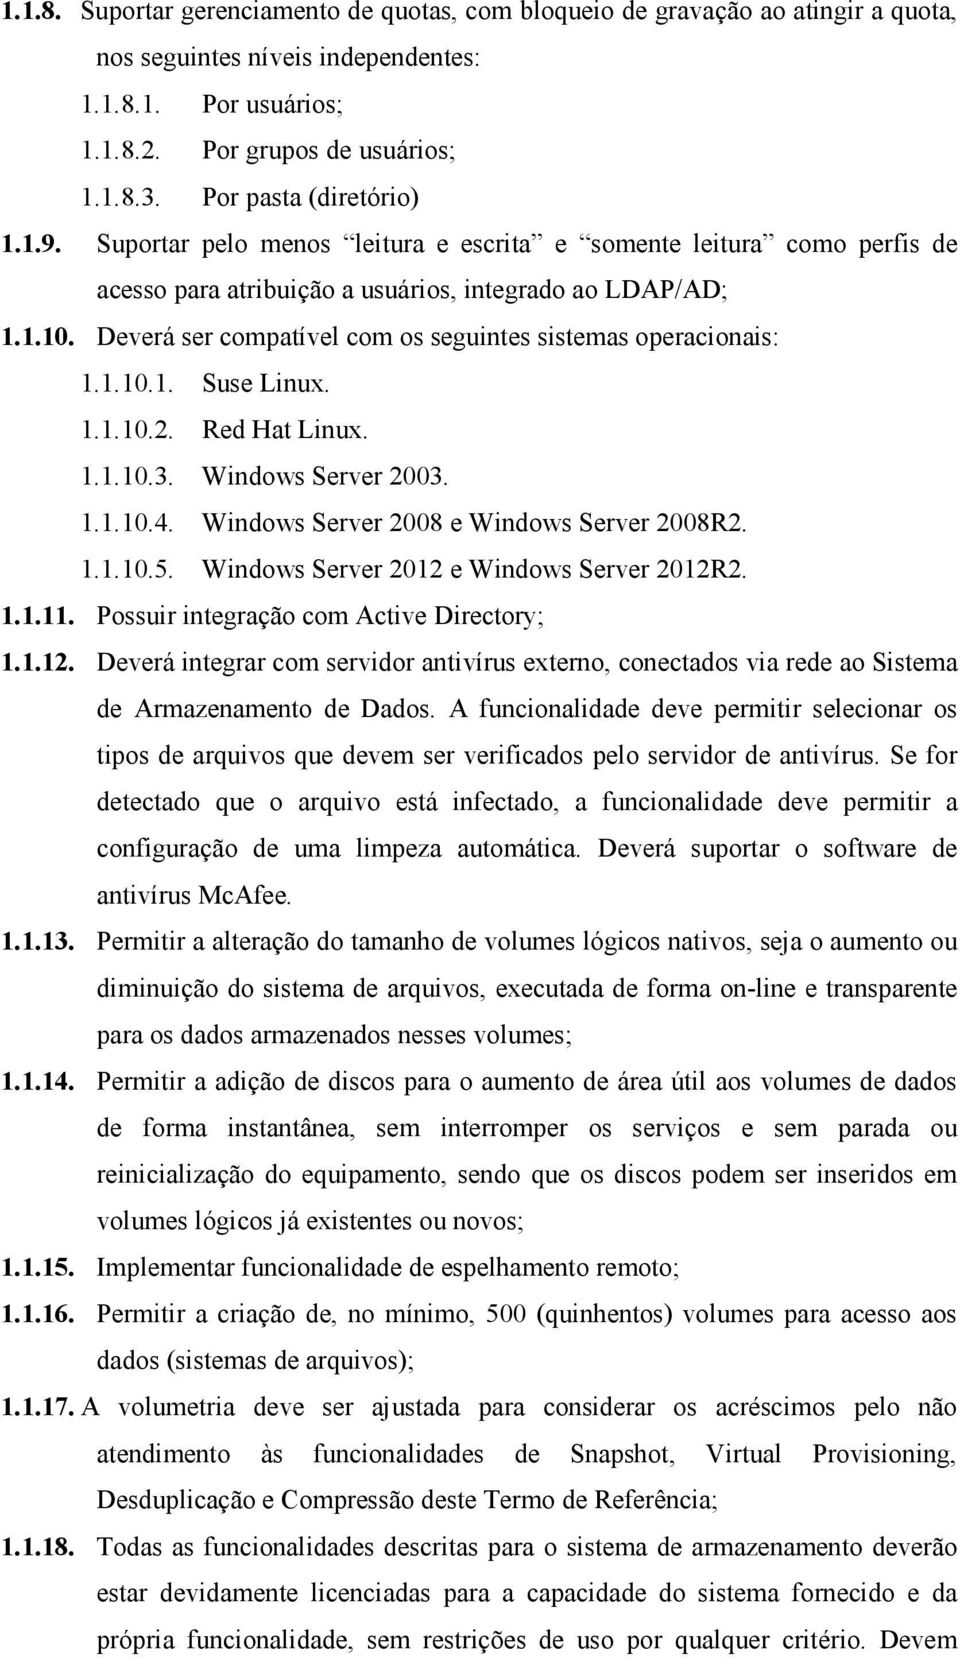 Deverá ser compatível com os seguintes sistemas operacionais: 1.1.10.1. Suse Linux. 1.1.10.2. Red Hat Linux. 1.1.10.3. Windows Server 2003. 1.1.10.4. Windows Server 2008 e Windows Server 2008R2. 1.1.10.5.